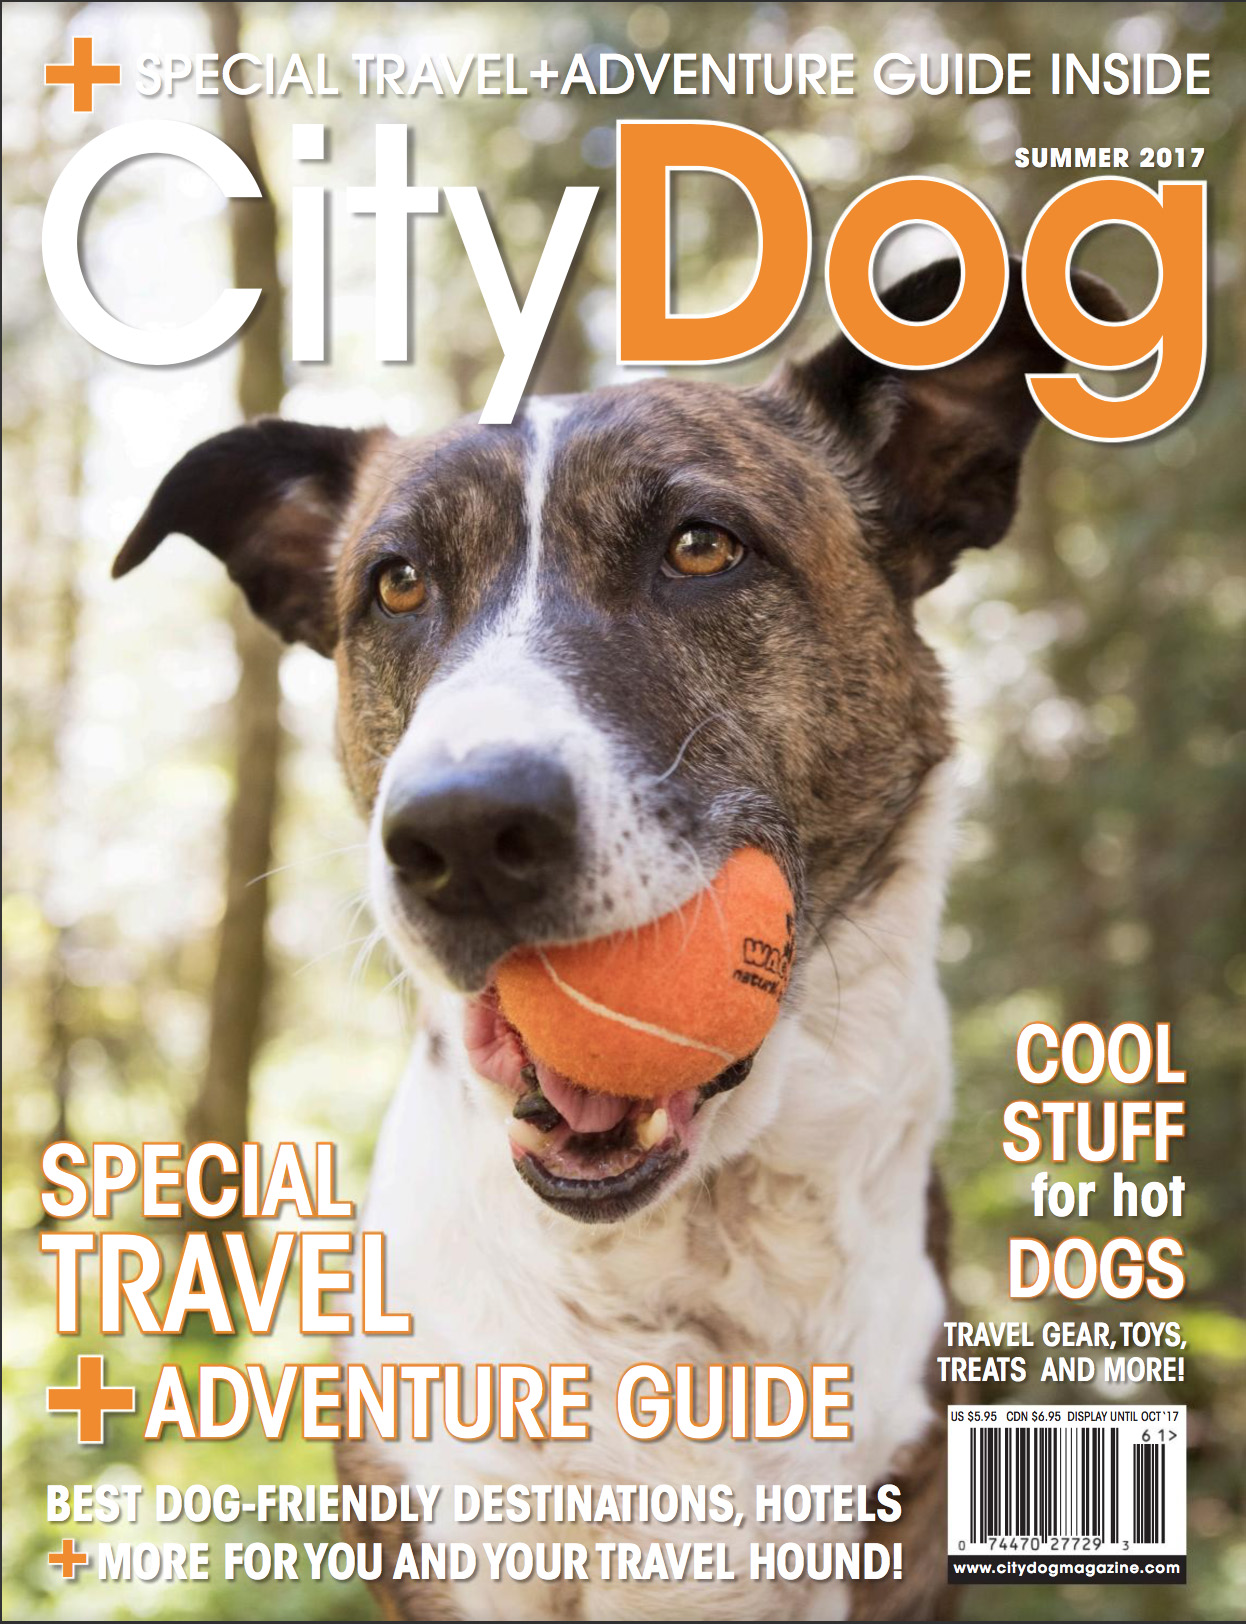 CityDog Summer Cover.jpg